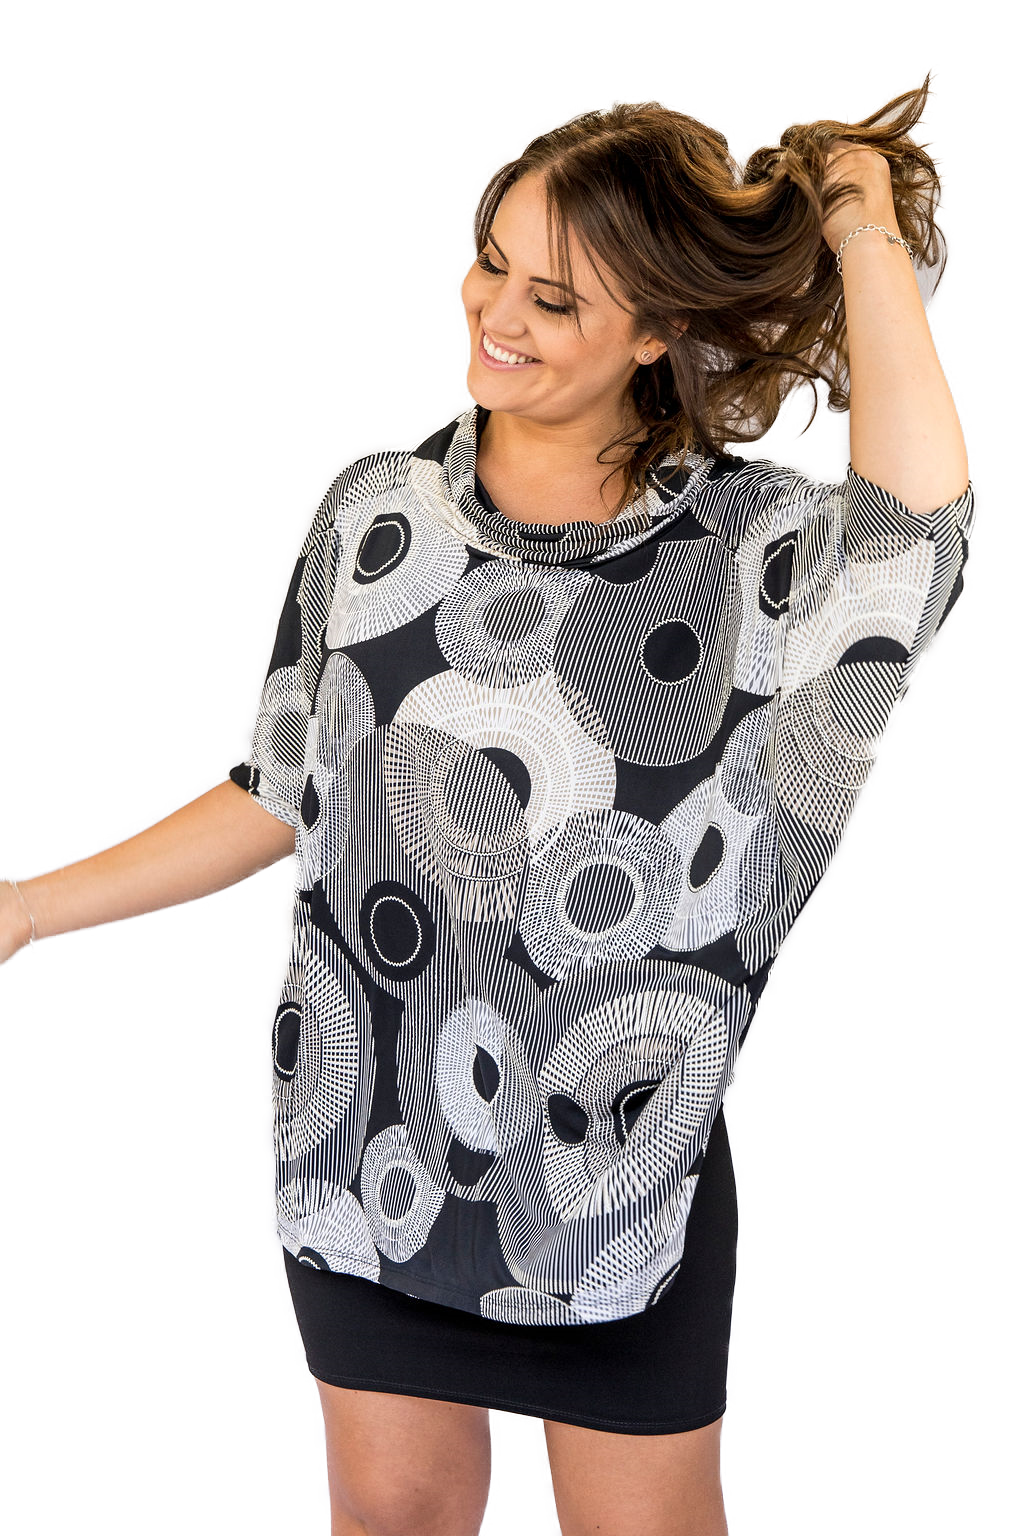 sallyannelyonscreativeclothingsolutionsforwomen2019_125_InPixio.png